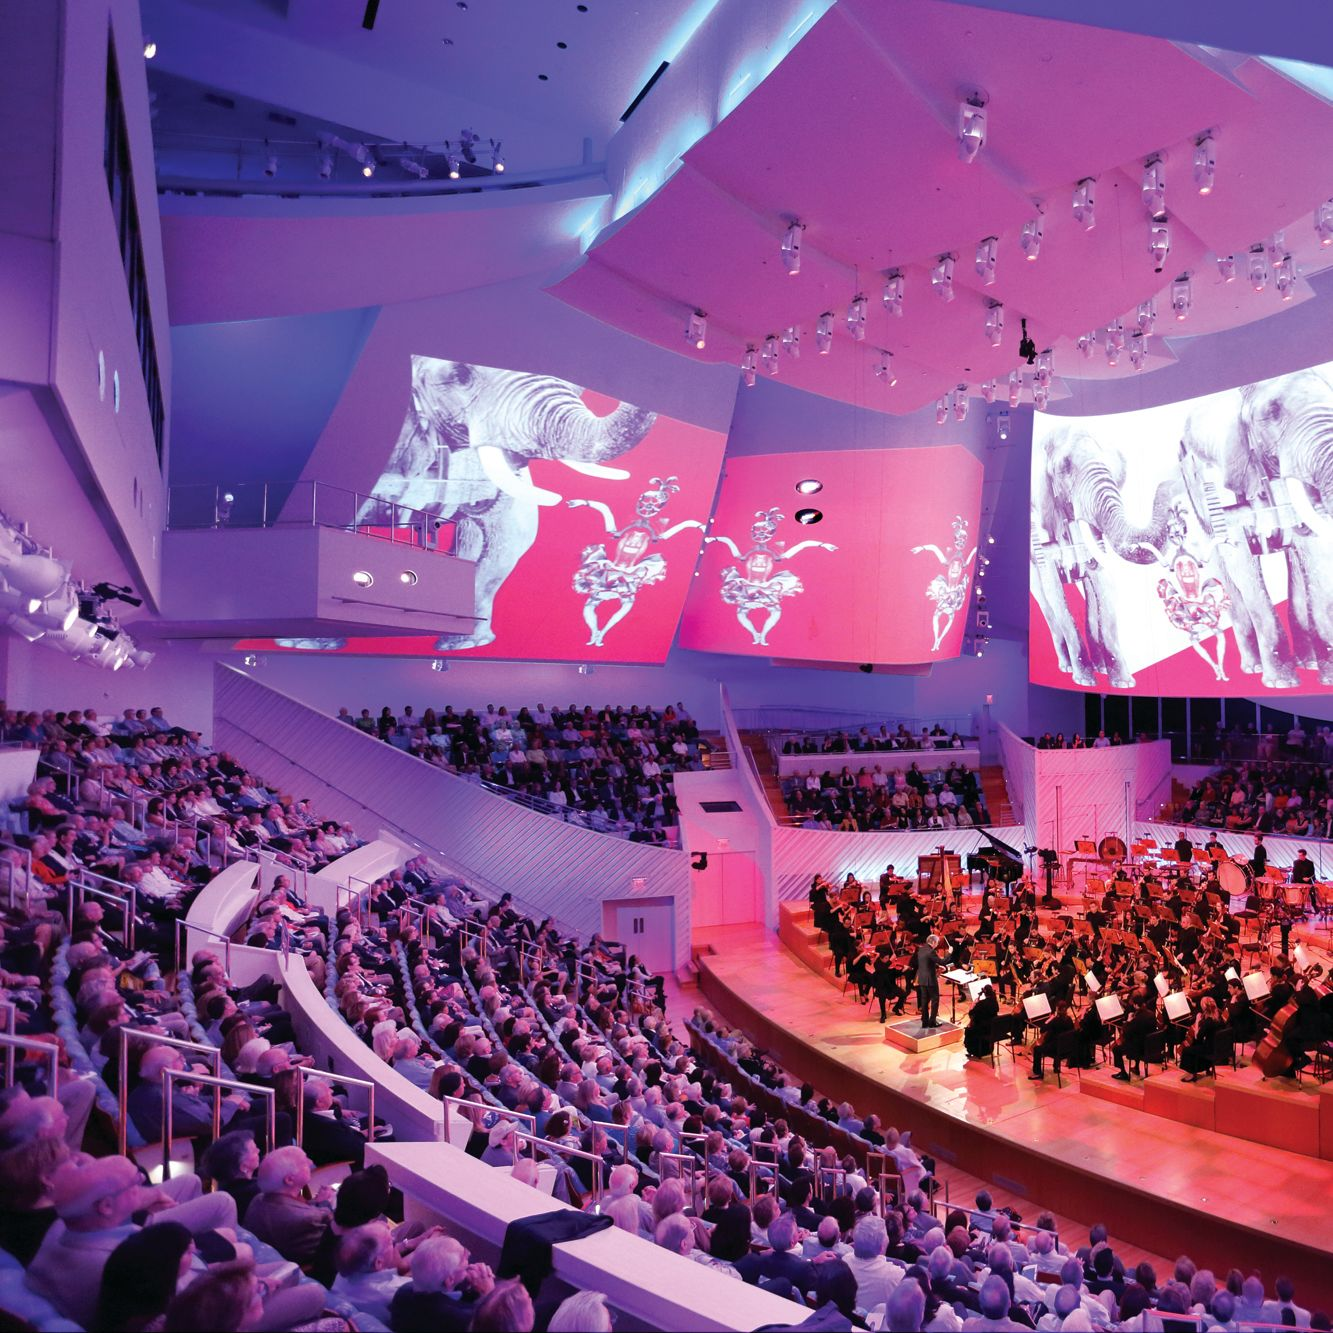 New world symphony miami zctt8z